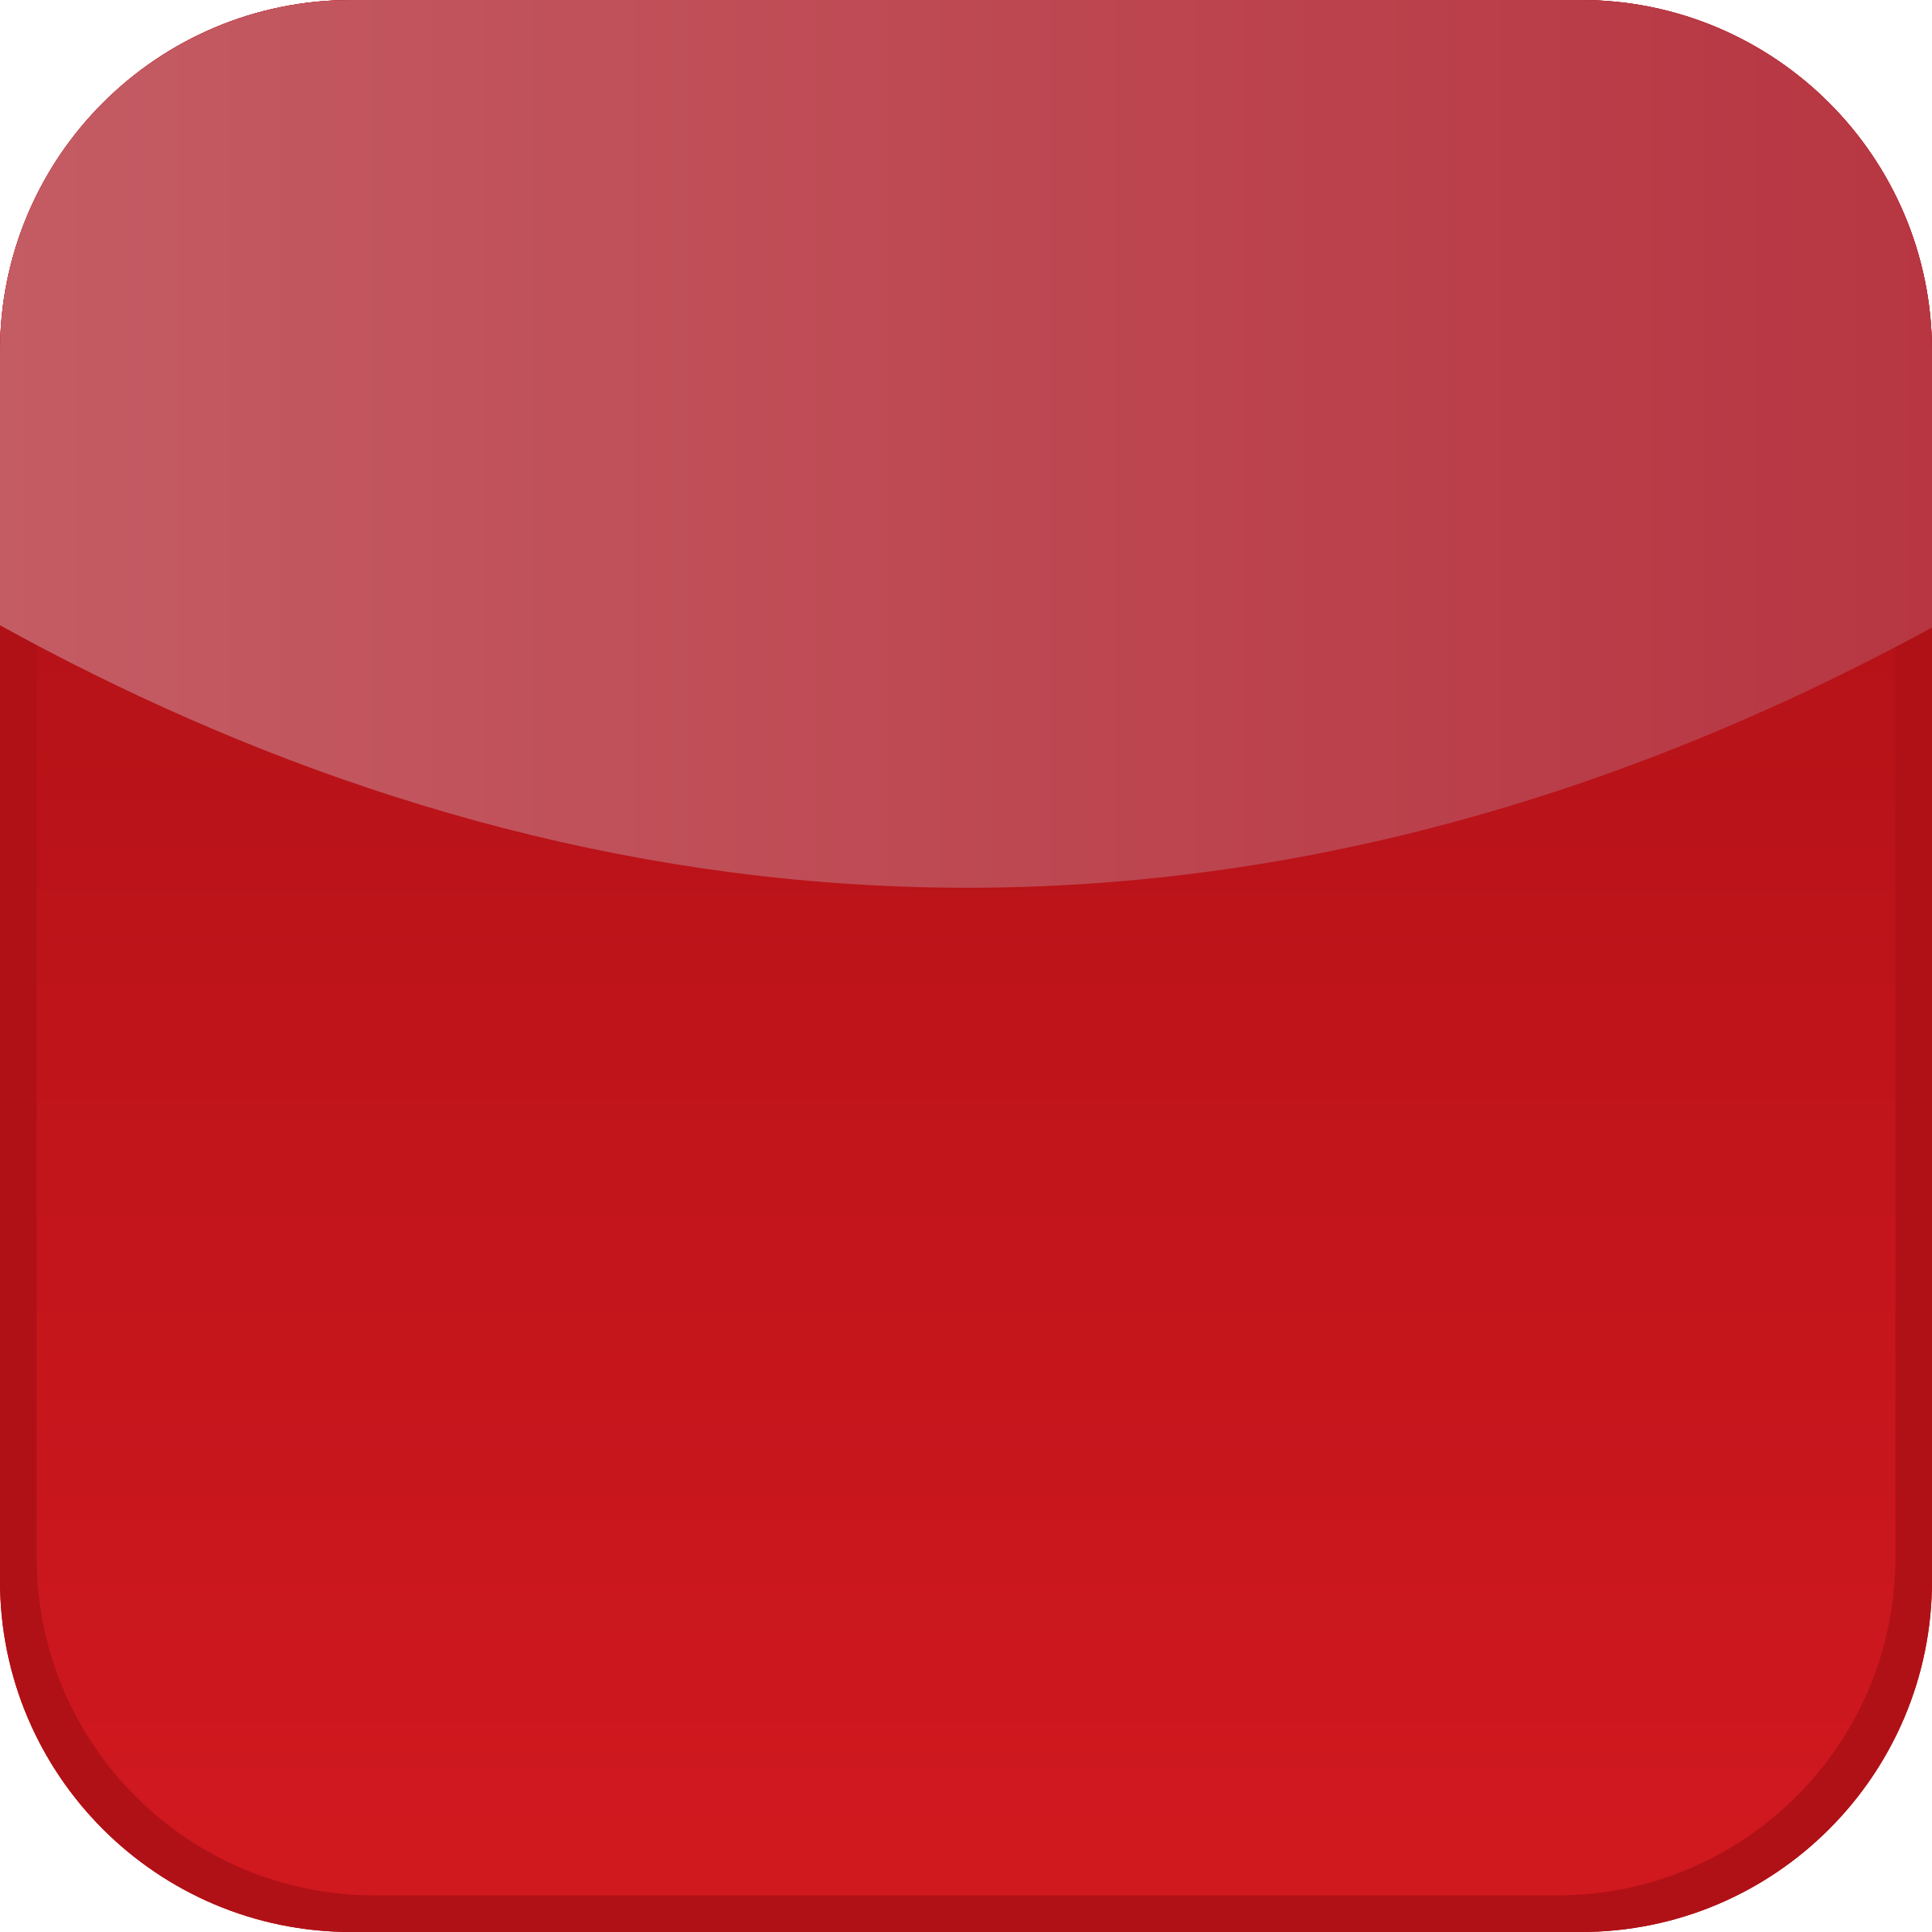 Red icon by shokunin